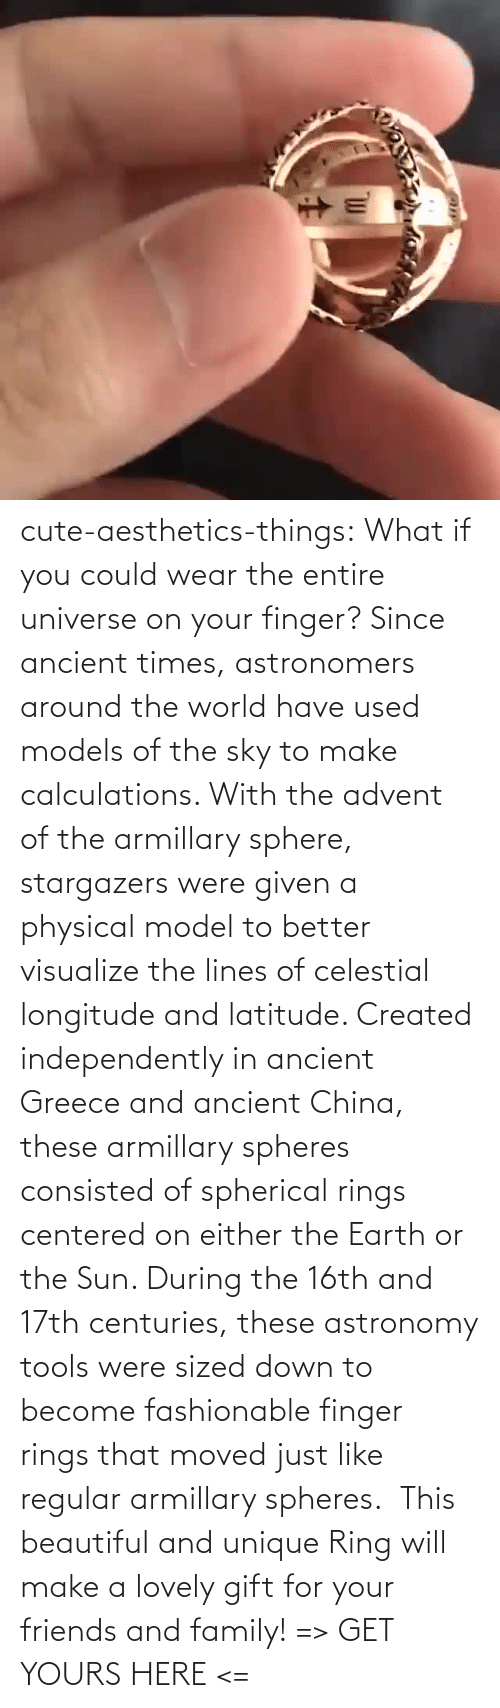 cute: cute-aesthetics-things: What if you could wear the entire universe on your finger? Since ancient times, astronomers around the world have used models of the sky to make calculations. With the advent of the armillary sphere, stargazers were given a physical model to better visualize the lines of celestial longitude and latitude. Created independently in ancient Greece and ancient China, these armillary spheres consisted of spherical rings centered on either the Earth or the Sun. During the 16th and 17th centuries, these astronomy tools were sized down to become fashionable finger rings that moved just like regular armillary spheres.  This beautiful and unique Ring will make a lovely gift for your friends and family! => GET YOURS HERE <=